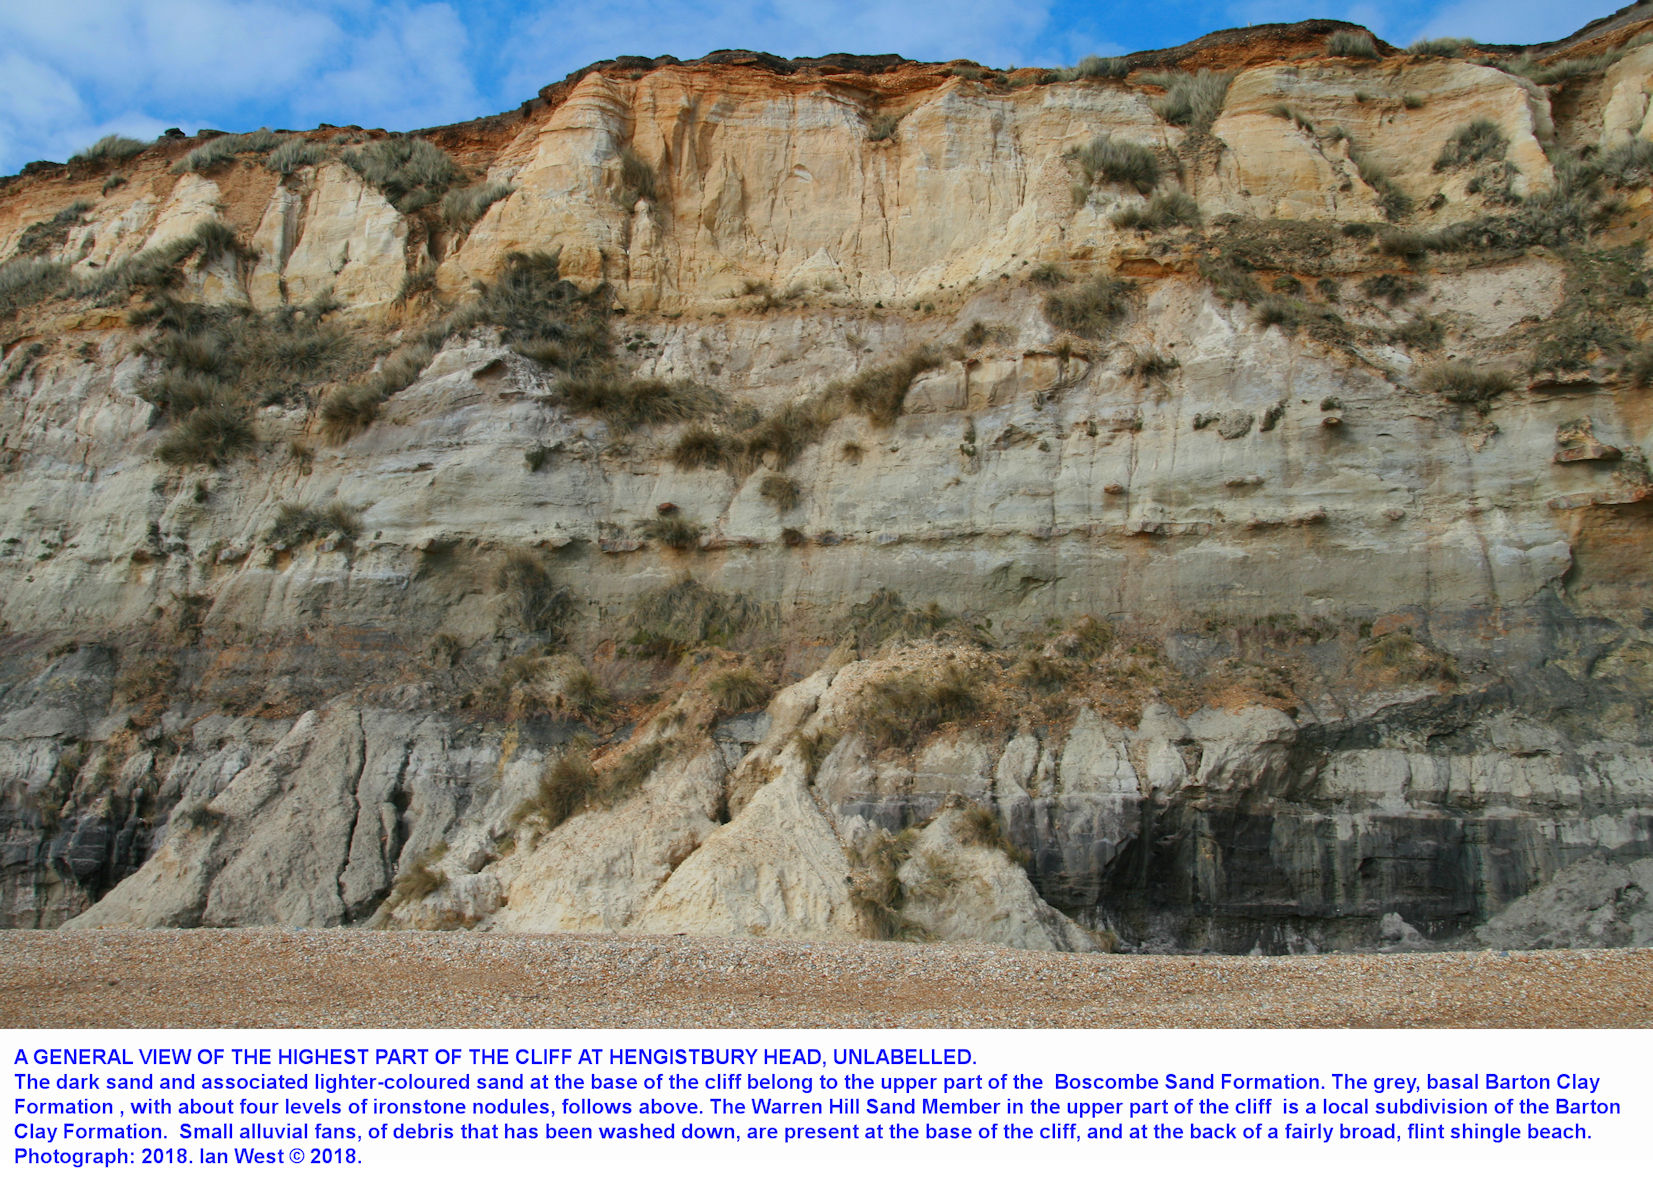 A general view of the near-vertical cliff at Hengistbury Head, Dorset, highest part - new - computer transfer check, new system, 16 June 2018